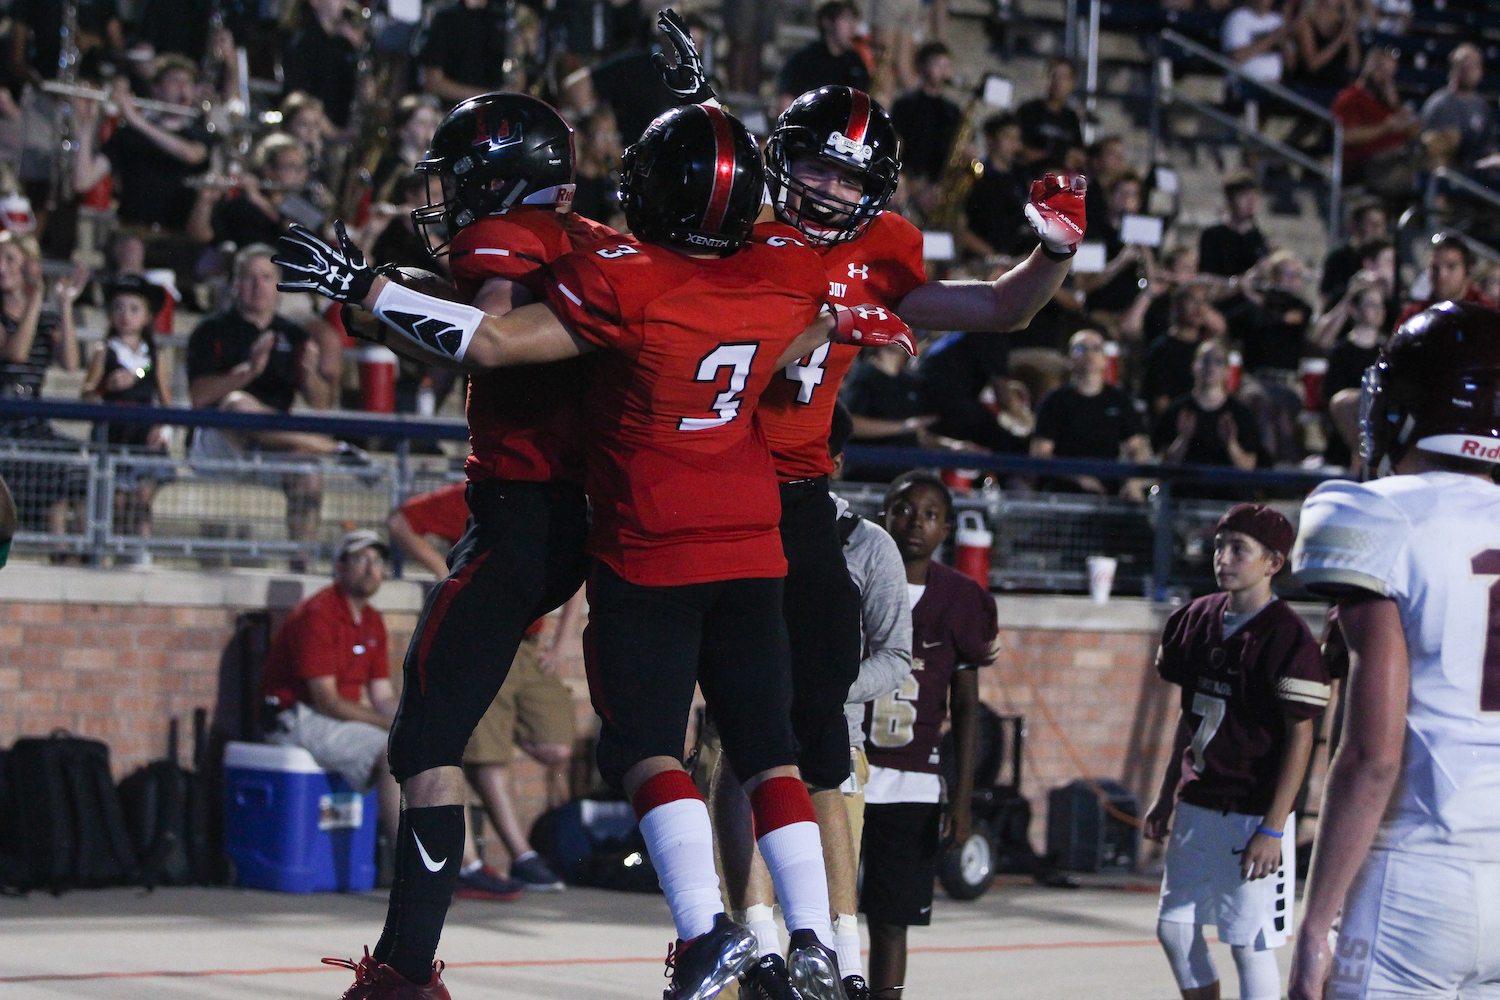 The Leopards offense celebrates one of its six touchdowns in a 42-26 victory over Frisco Heritage.